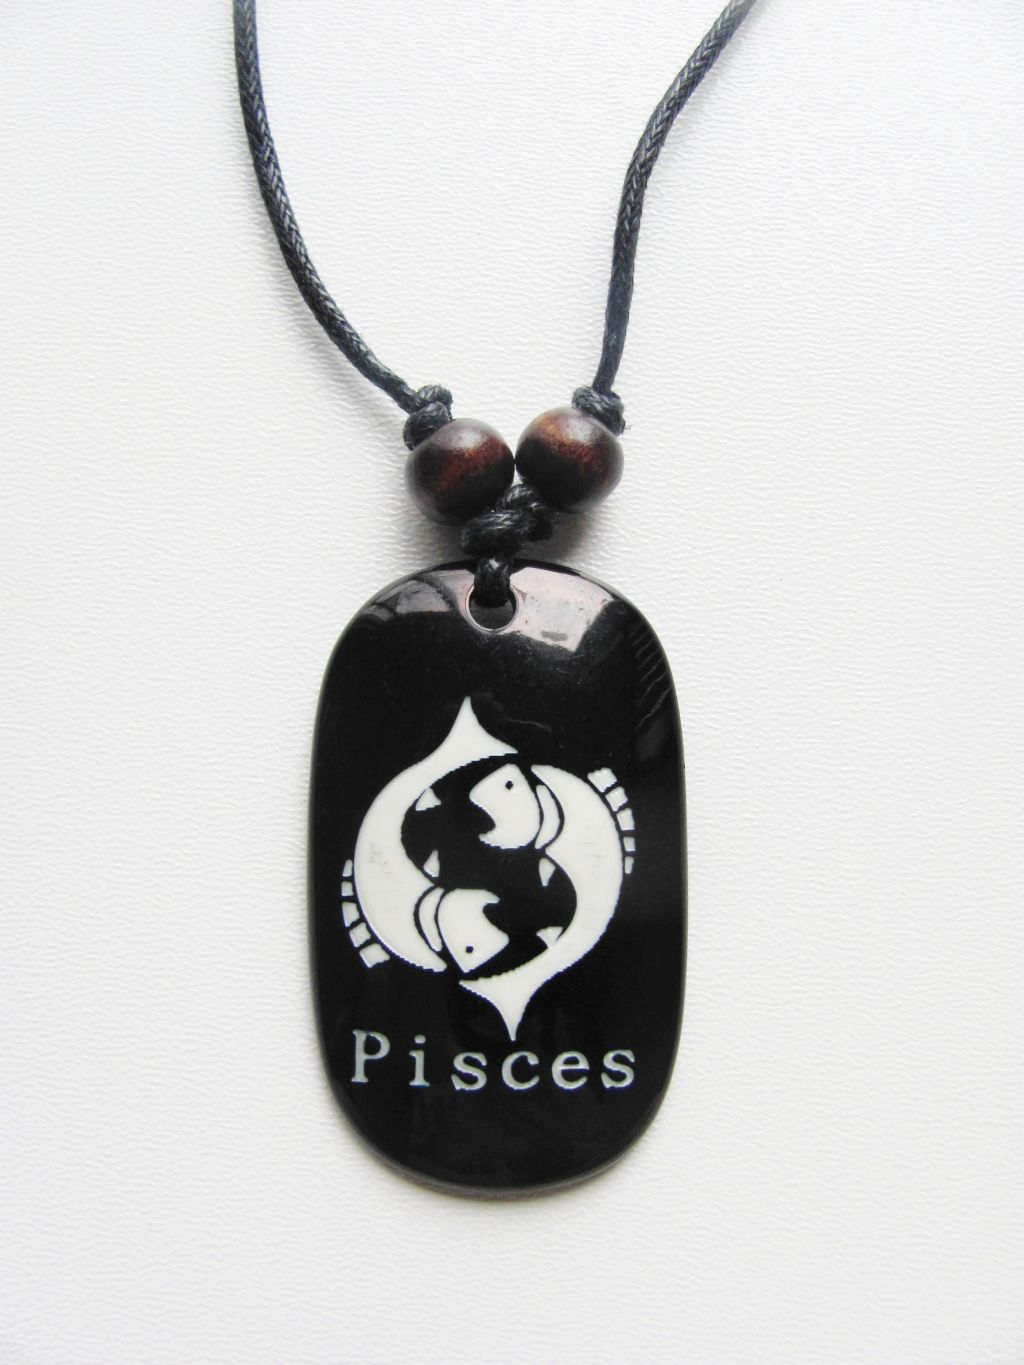 pisces zodiac sign pendant s adjustable necklace